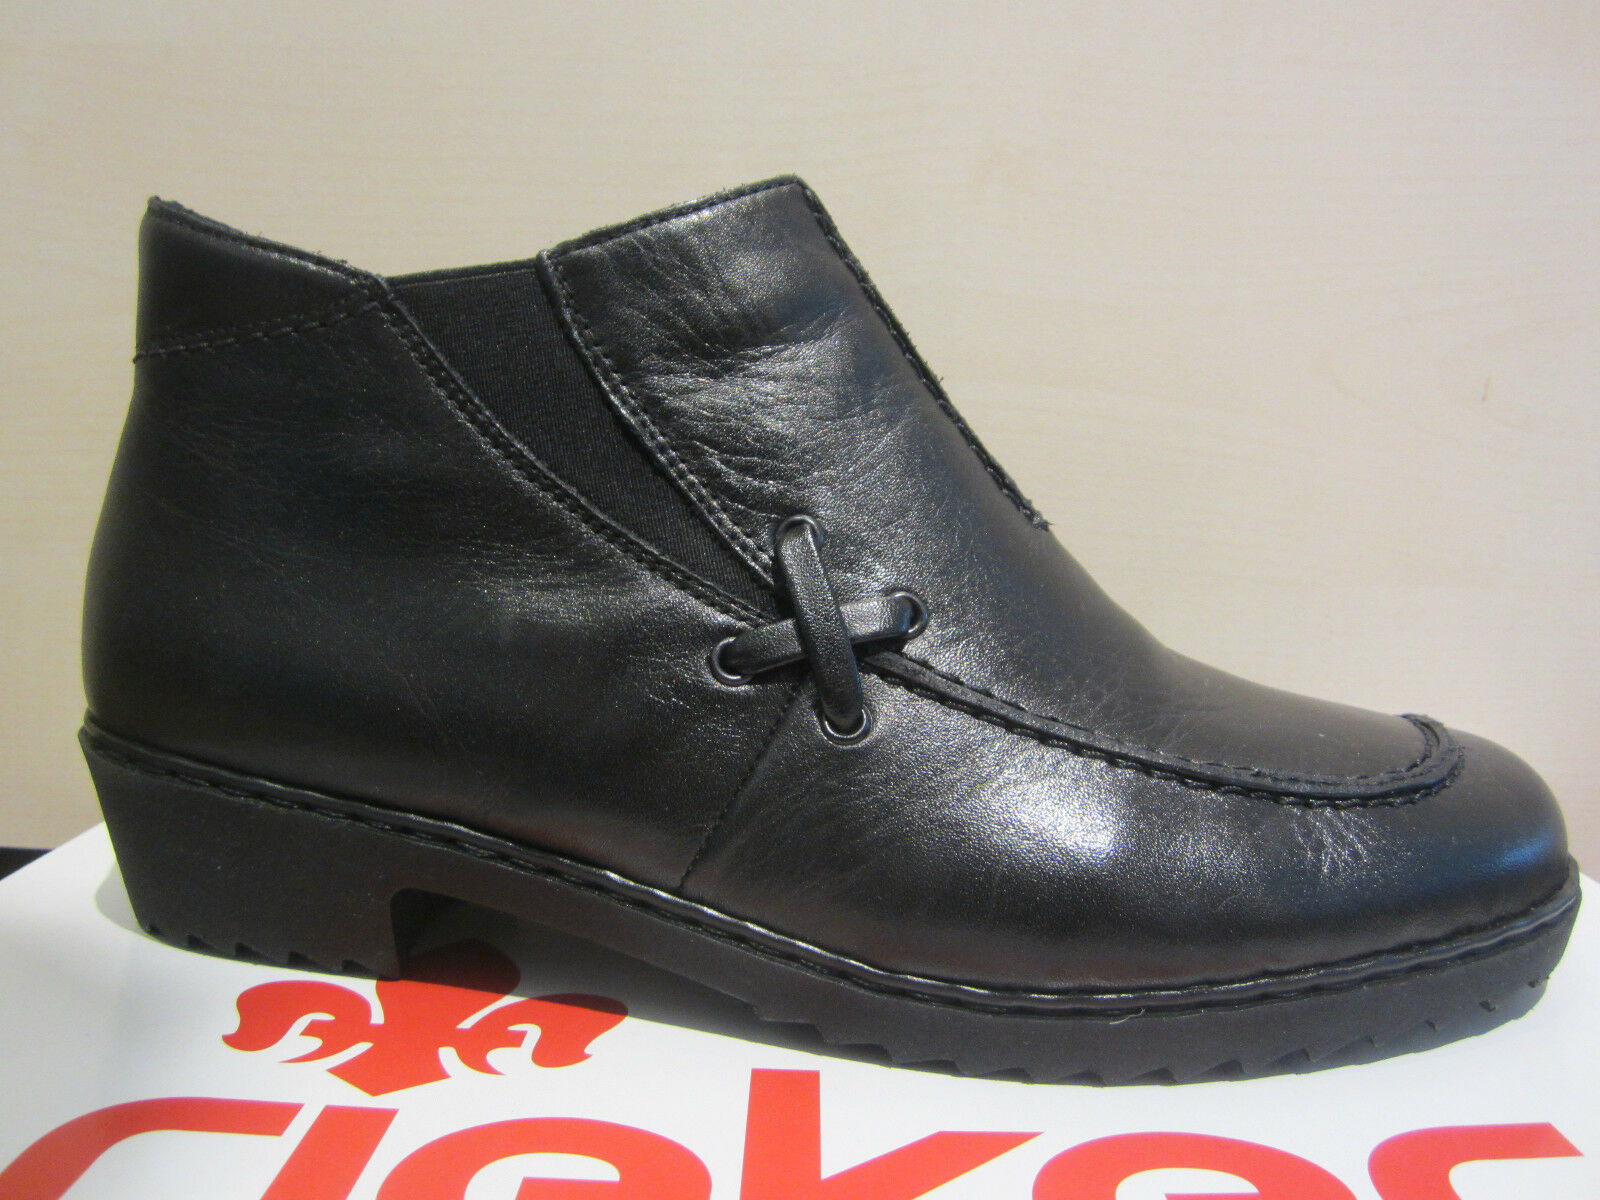 Rieker Boots, Boots, Winter Boots, Ankle Boots, Black, Leather, Padded, NEW